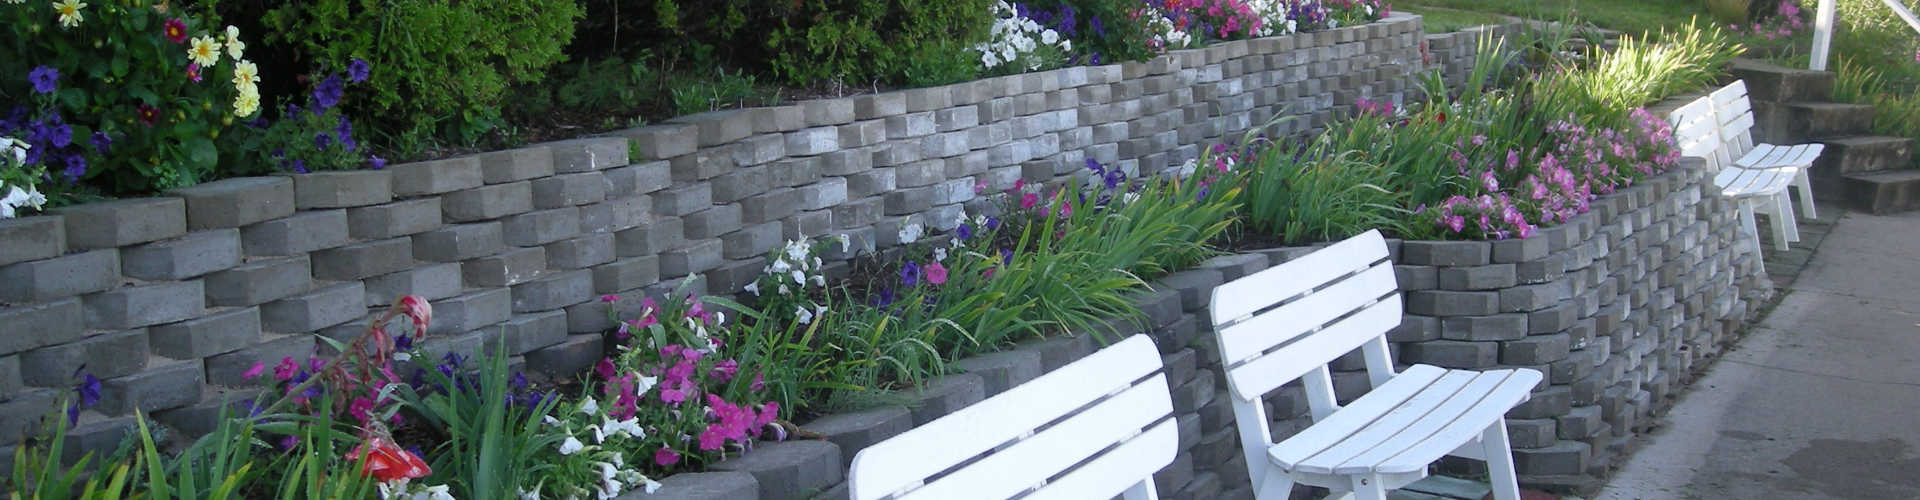 Lawn and Garden Supplies in the Cincinnati Metro Area